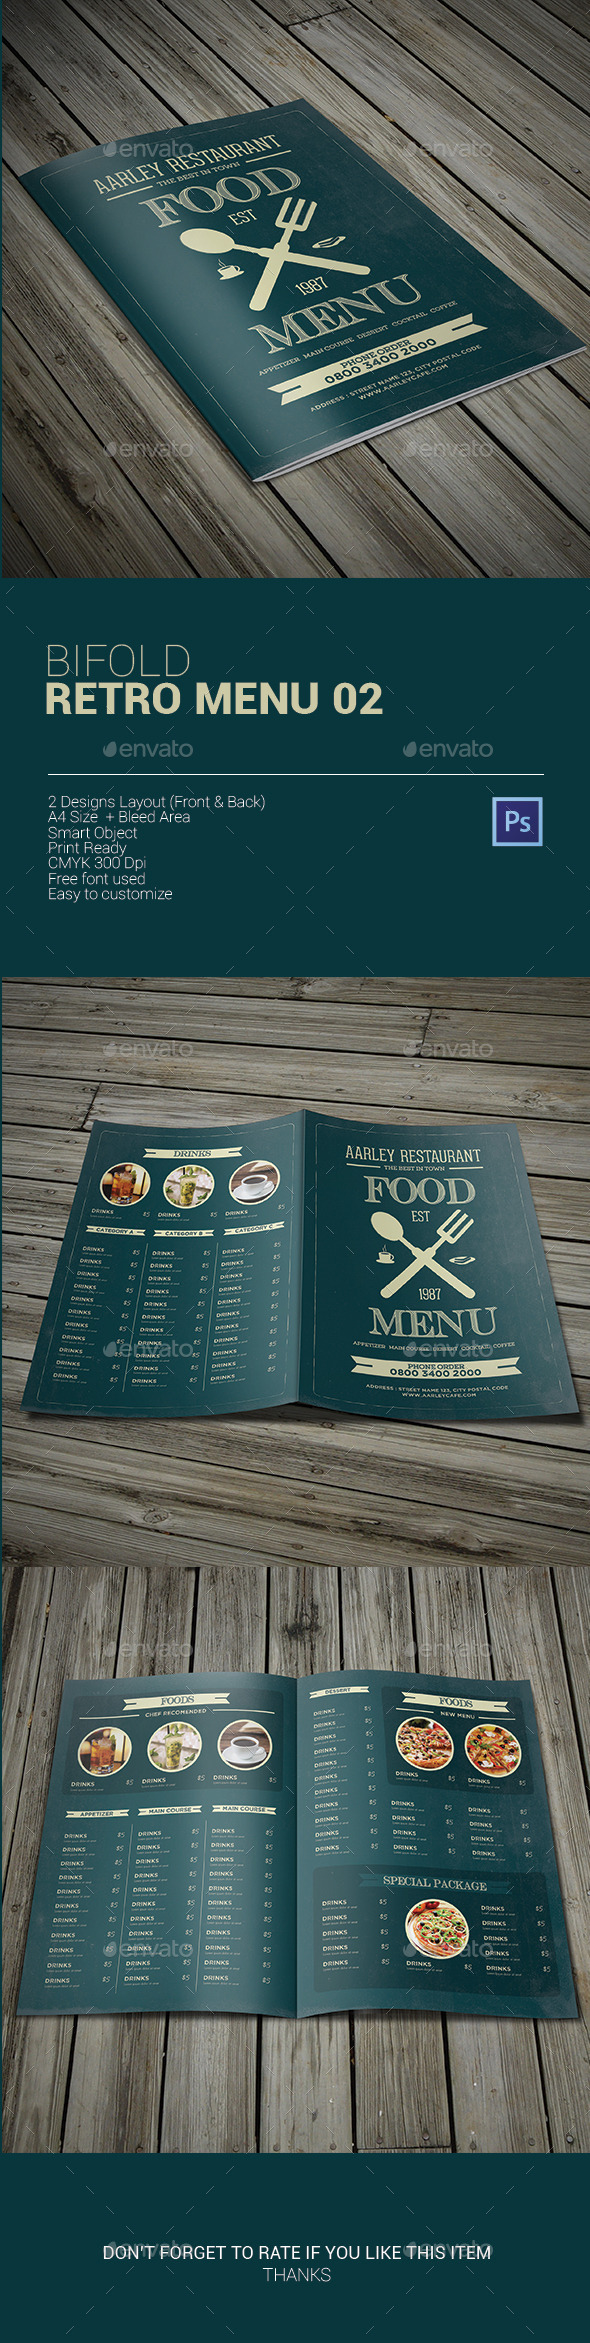 GraphicRiver Bifold Retro Menu 02 9911545